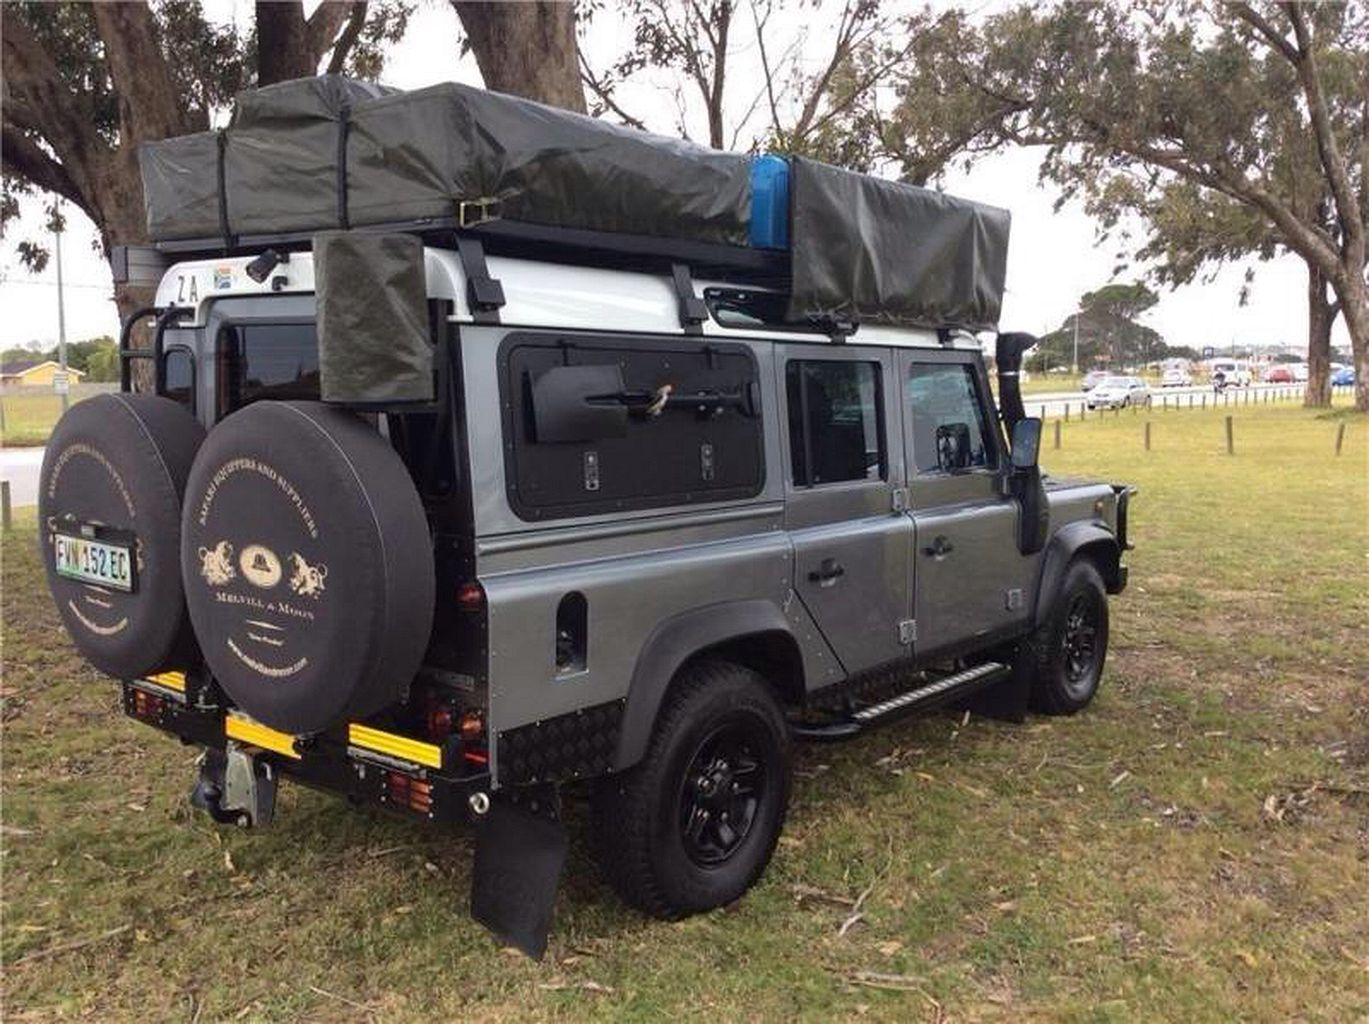 Photo Land Rover Defender Camping Adventure Land Rover Defender